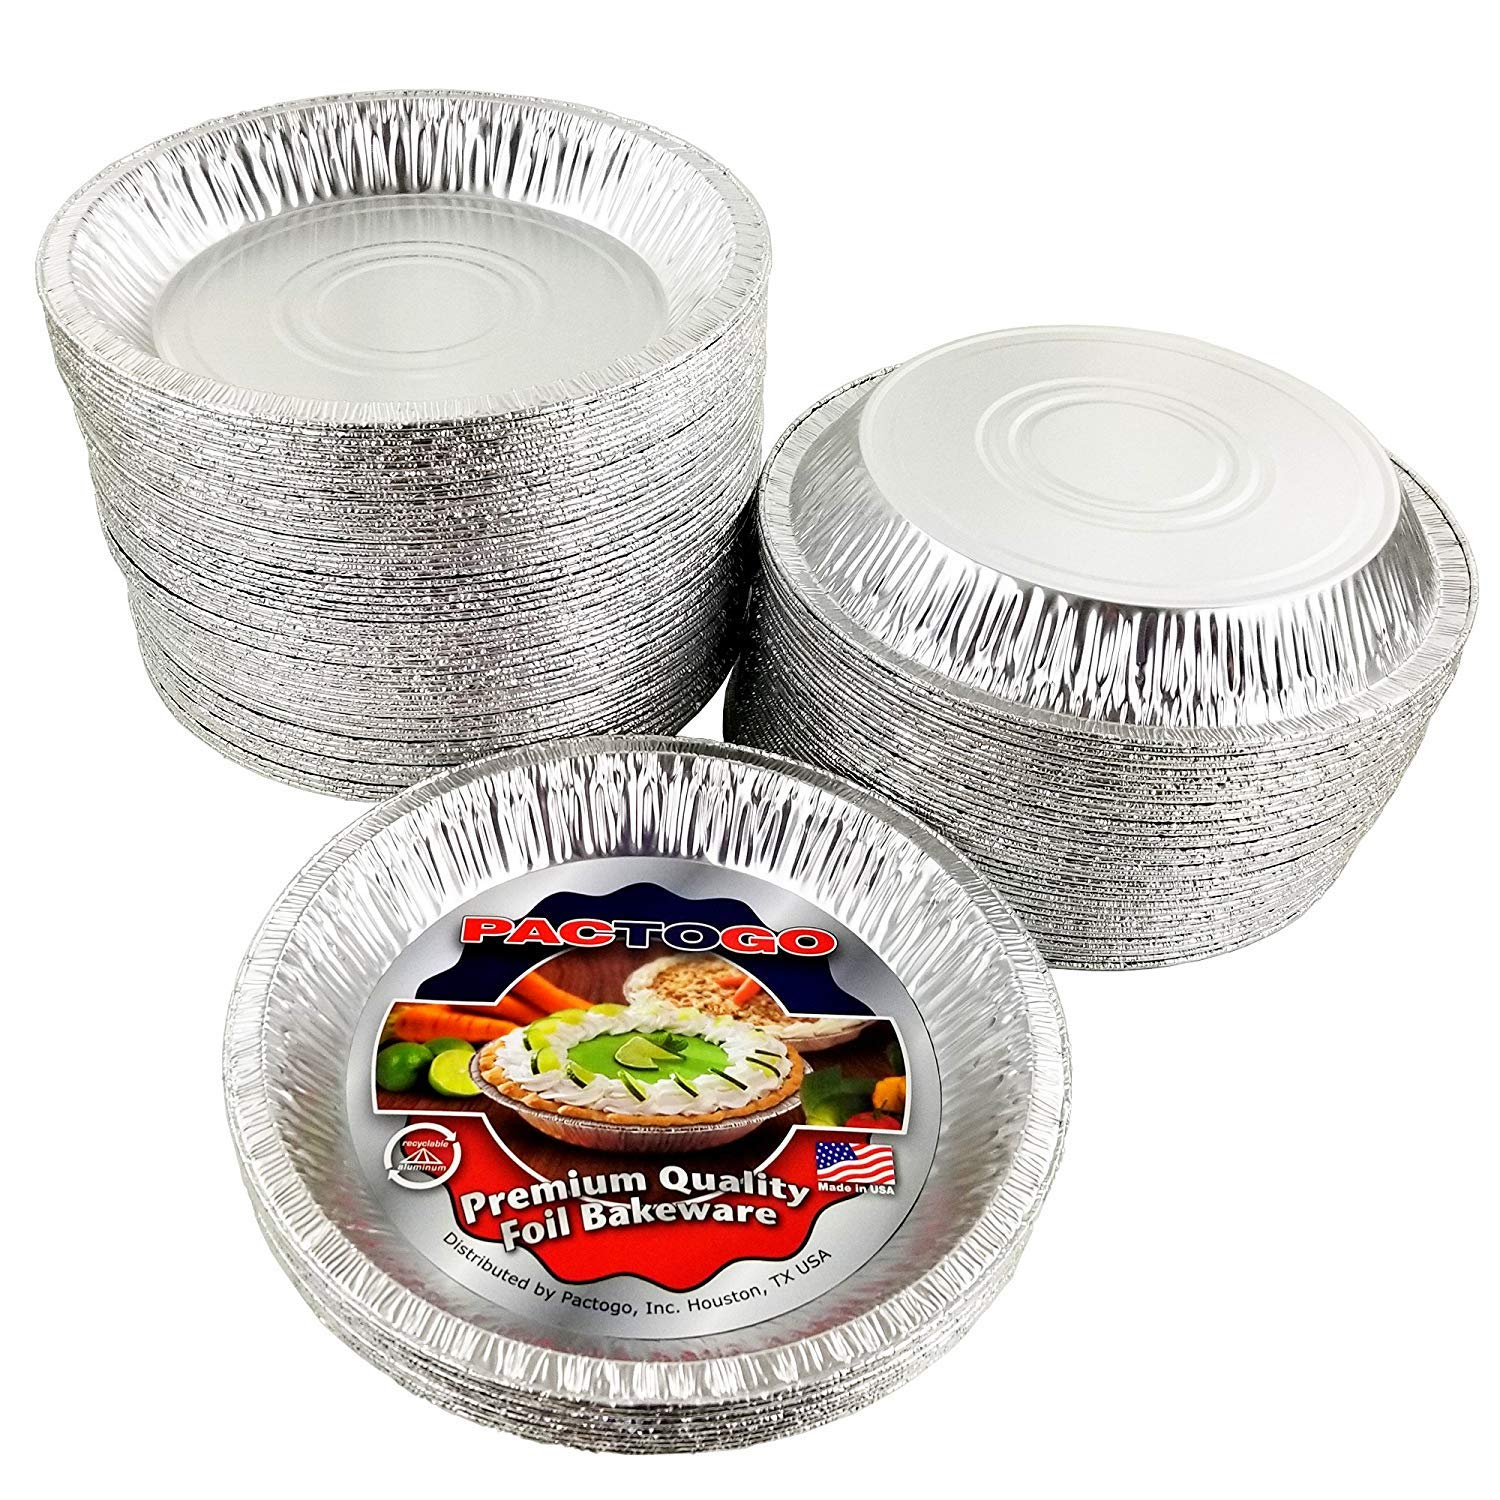 Pactogo Aluminum Foil Pie Pan (Actual Top-Out 9-5/8 Inches - Top-In 8-3/4 Inches - Vertical Depth 1-3/16 Inches) - Disposable Baking Tin Plates (Pack of 100) by PACTOGO (Image #1)